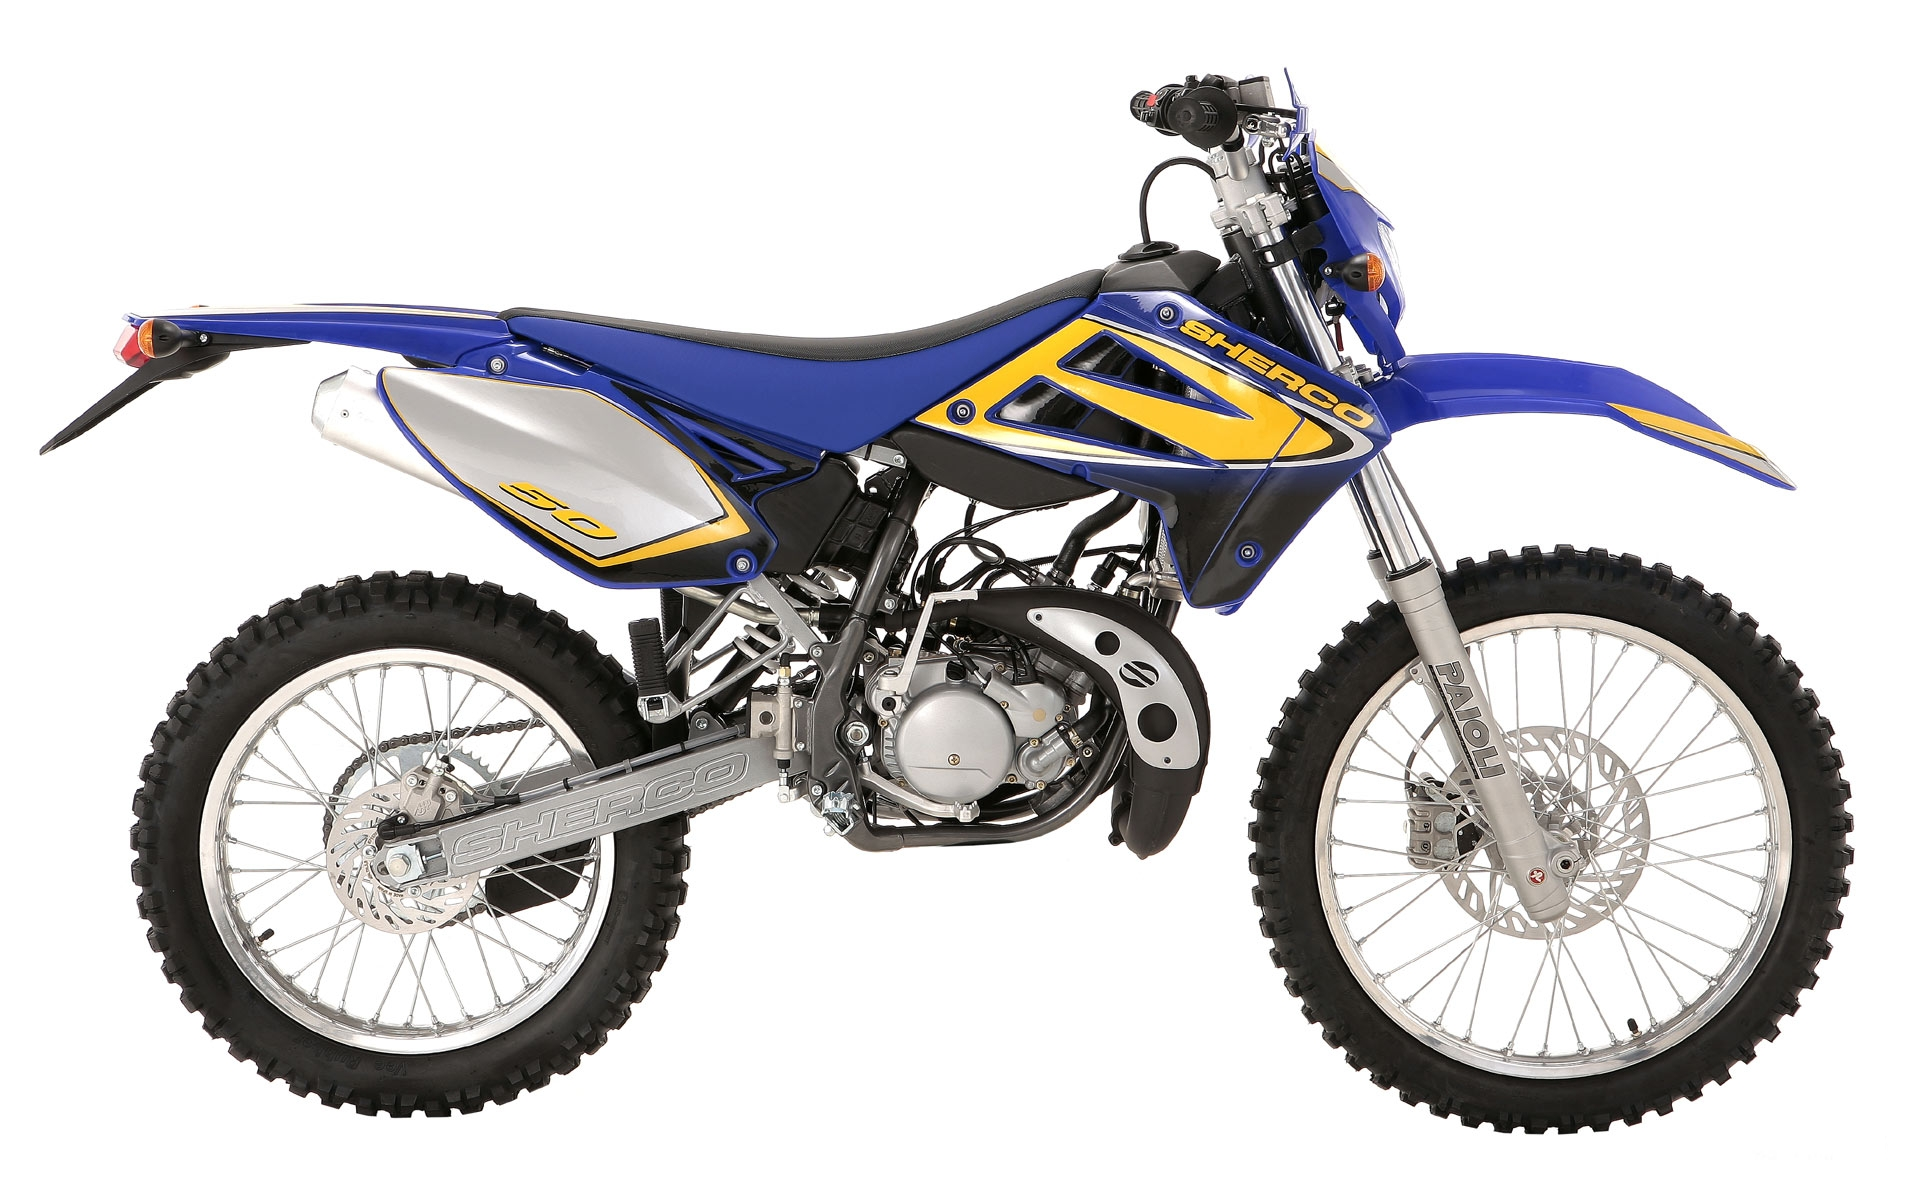 Sherco 125 Enduro Shark Replica #5